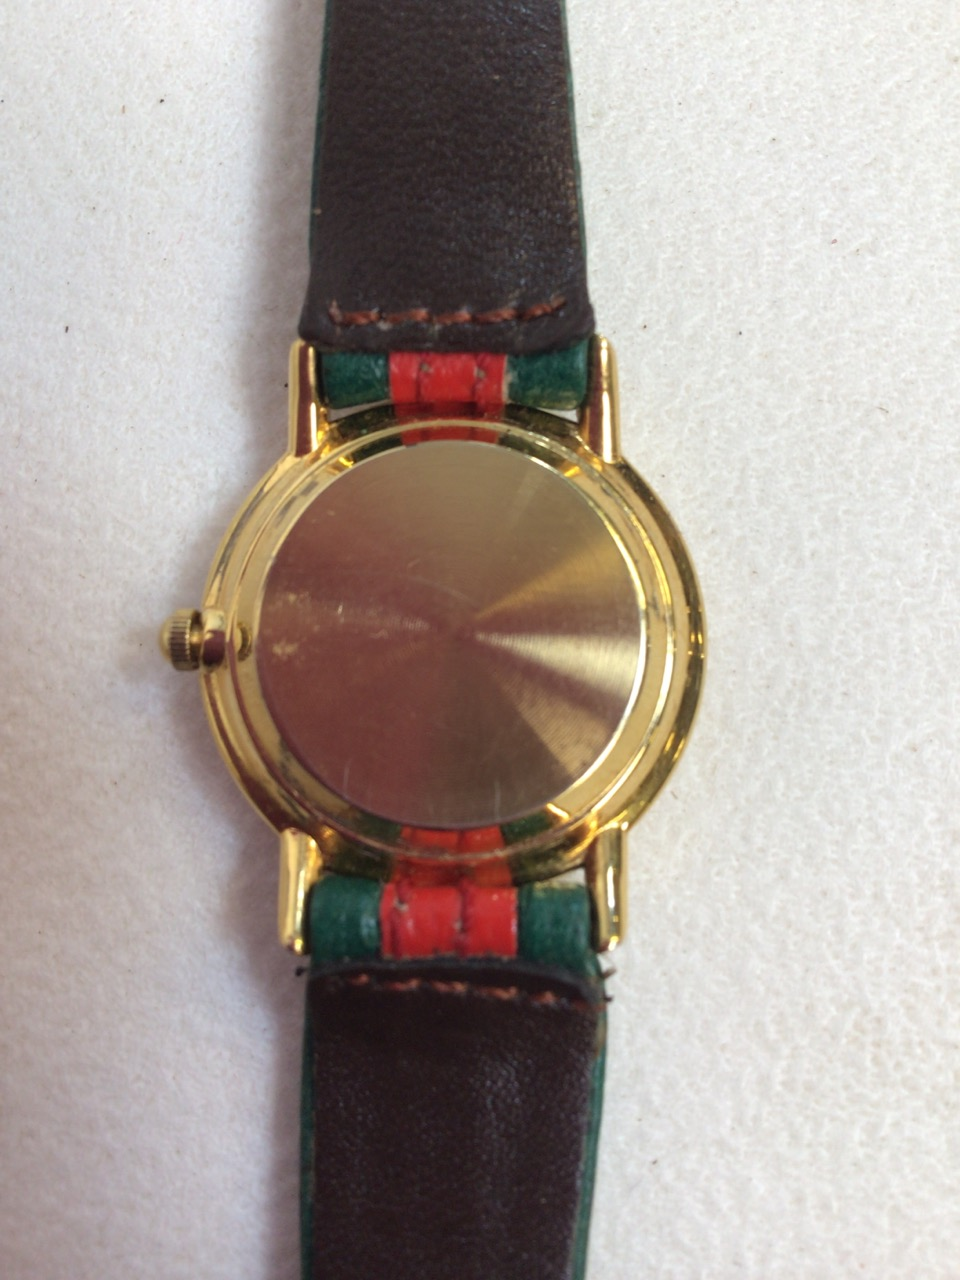 A ladies watch stamped Gucci. - Image 2 of 4